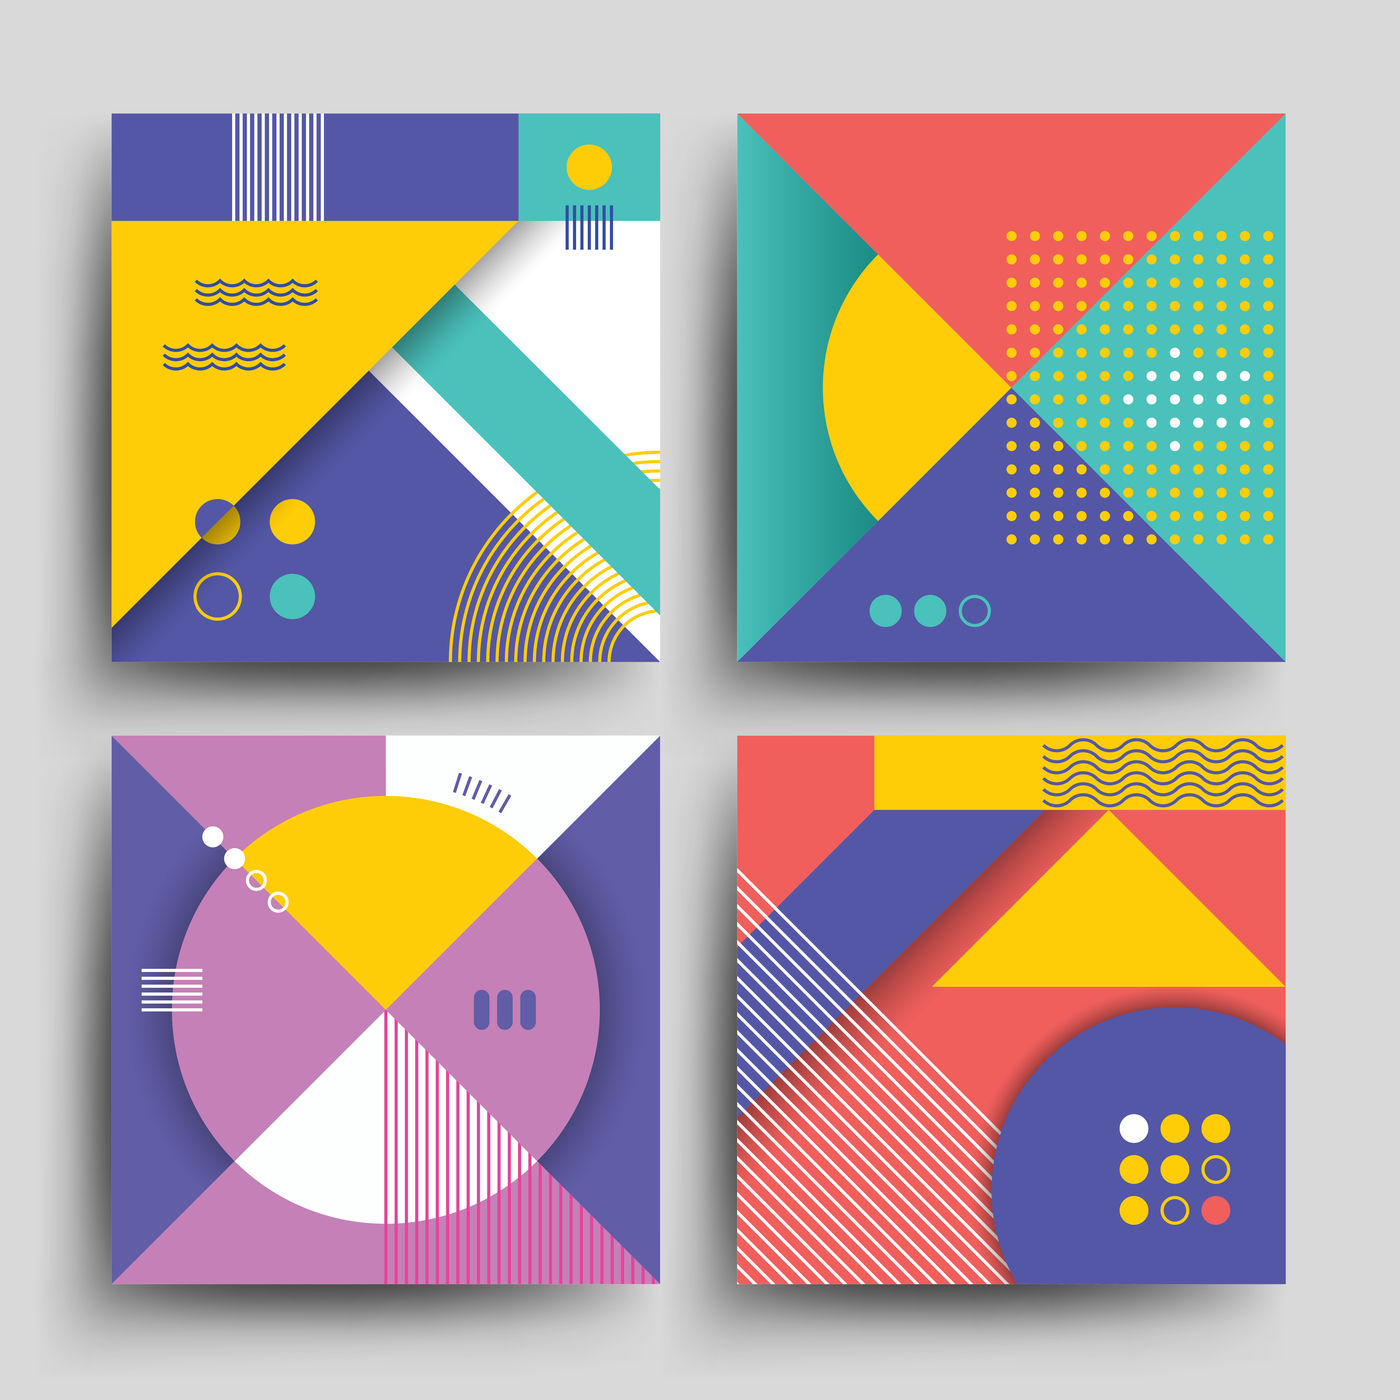 Retro Patterns With Abstract Simple Geometric Shapes Vector